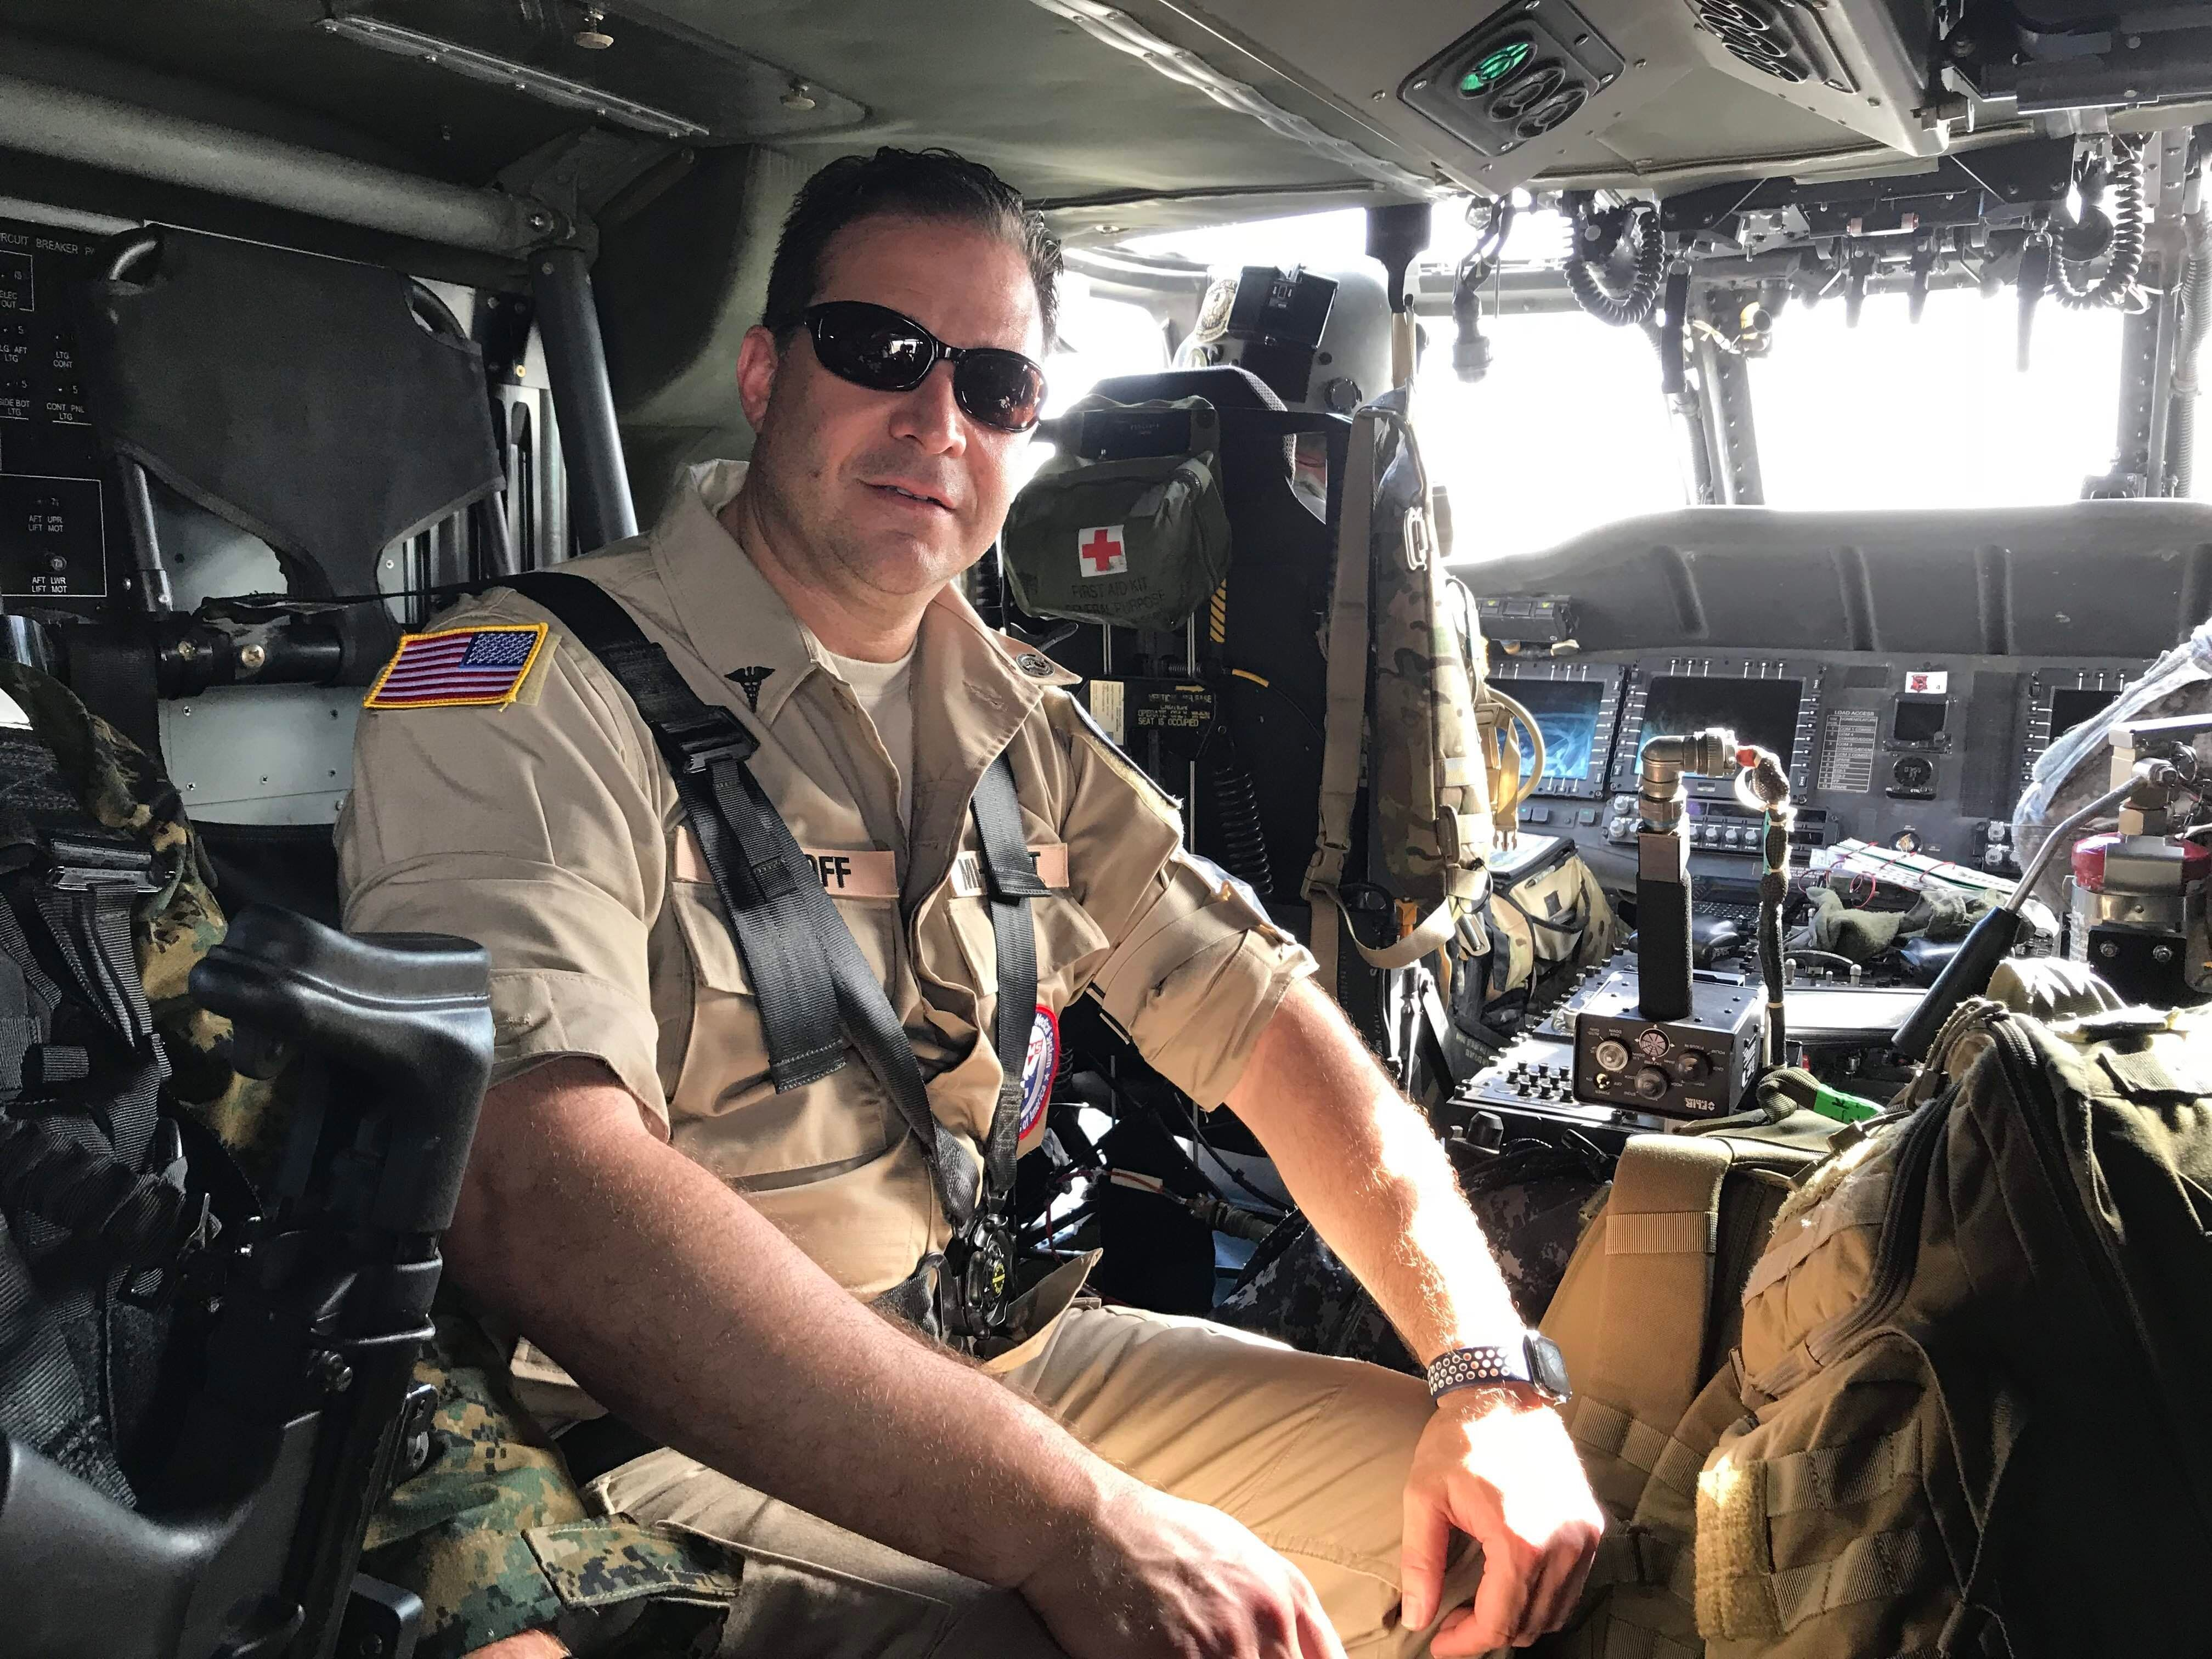 Dr. Steven Rockoff of Detroit on the military helicopter that ferried him and members of his team across Puerto Rico after Hu